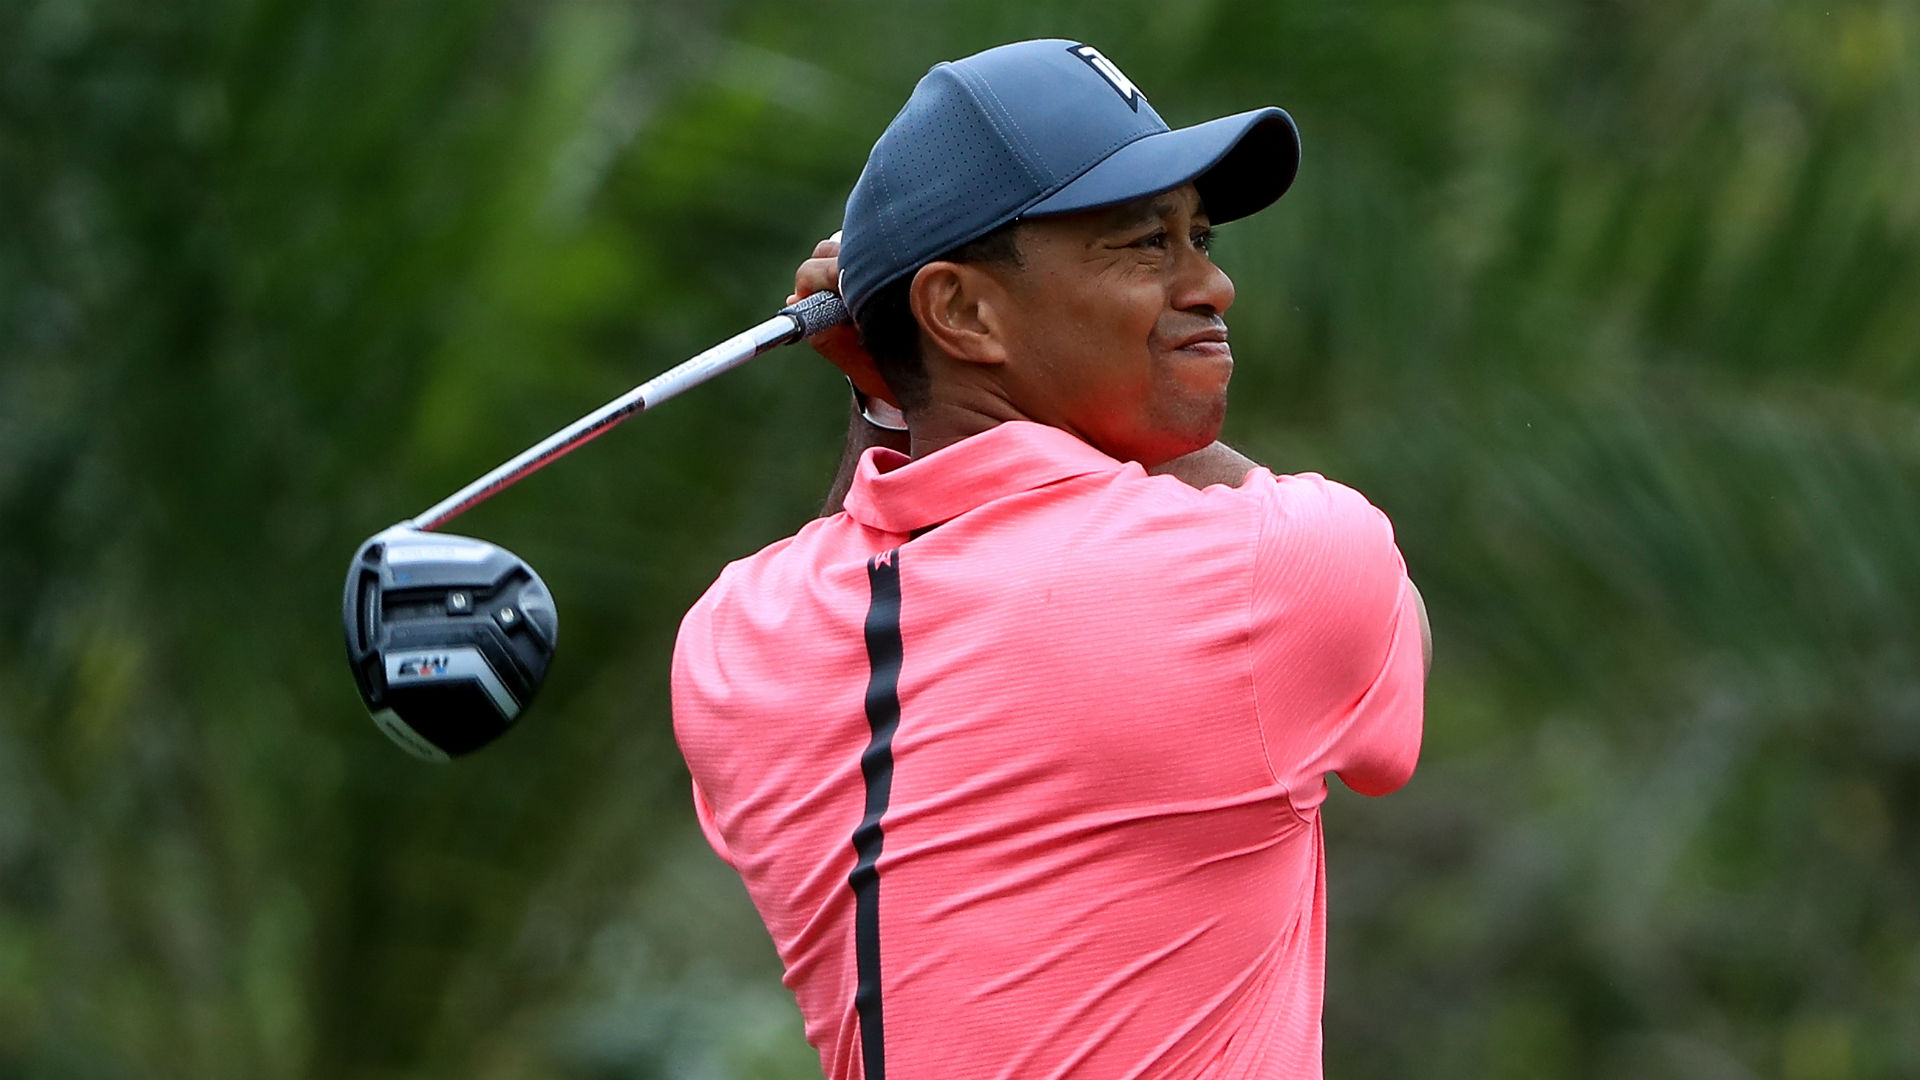 Tiger Woods 'revved up' after impressive opening at Valspar Championship